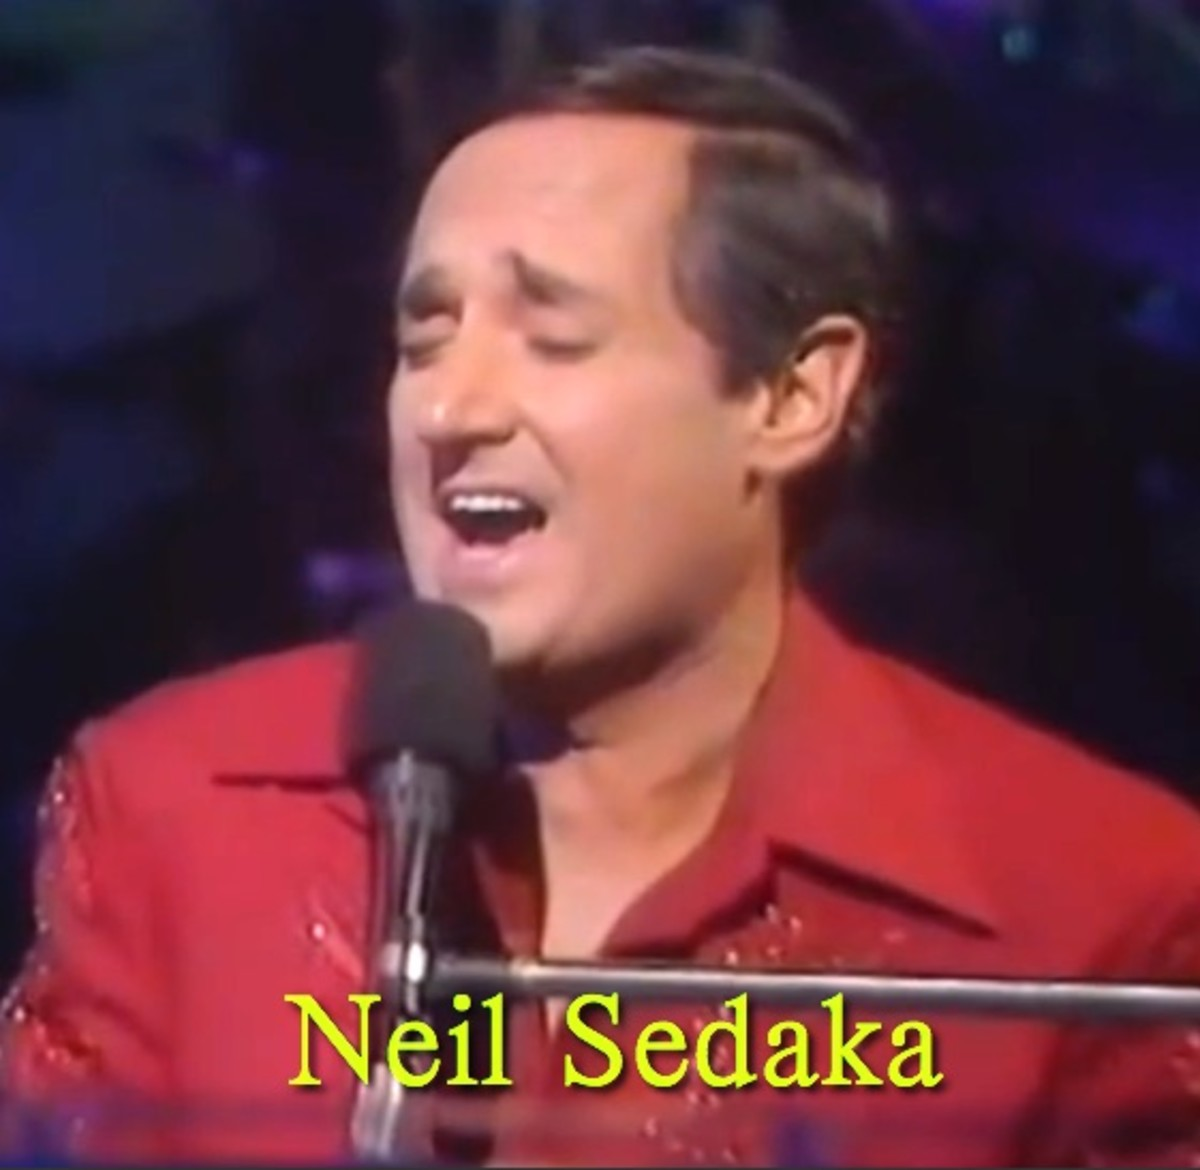 How I Discovered that Neil Sedaka Dated Carole King